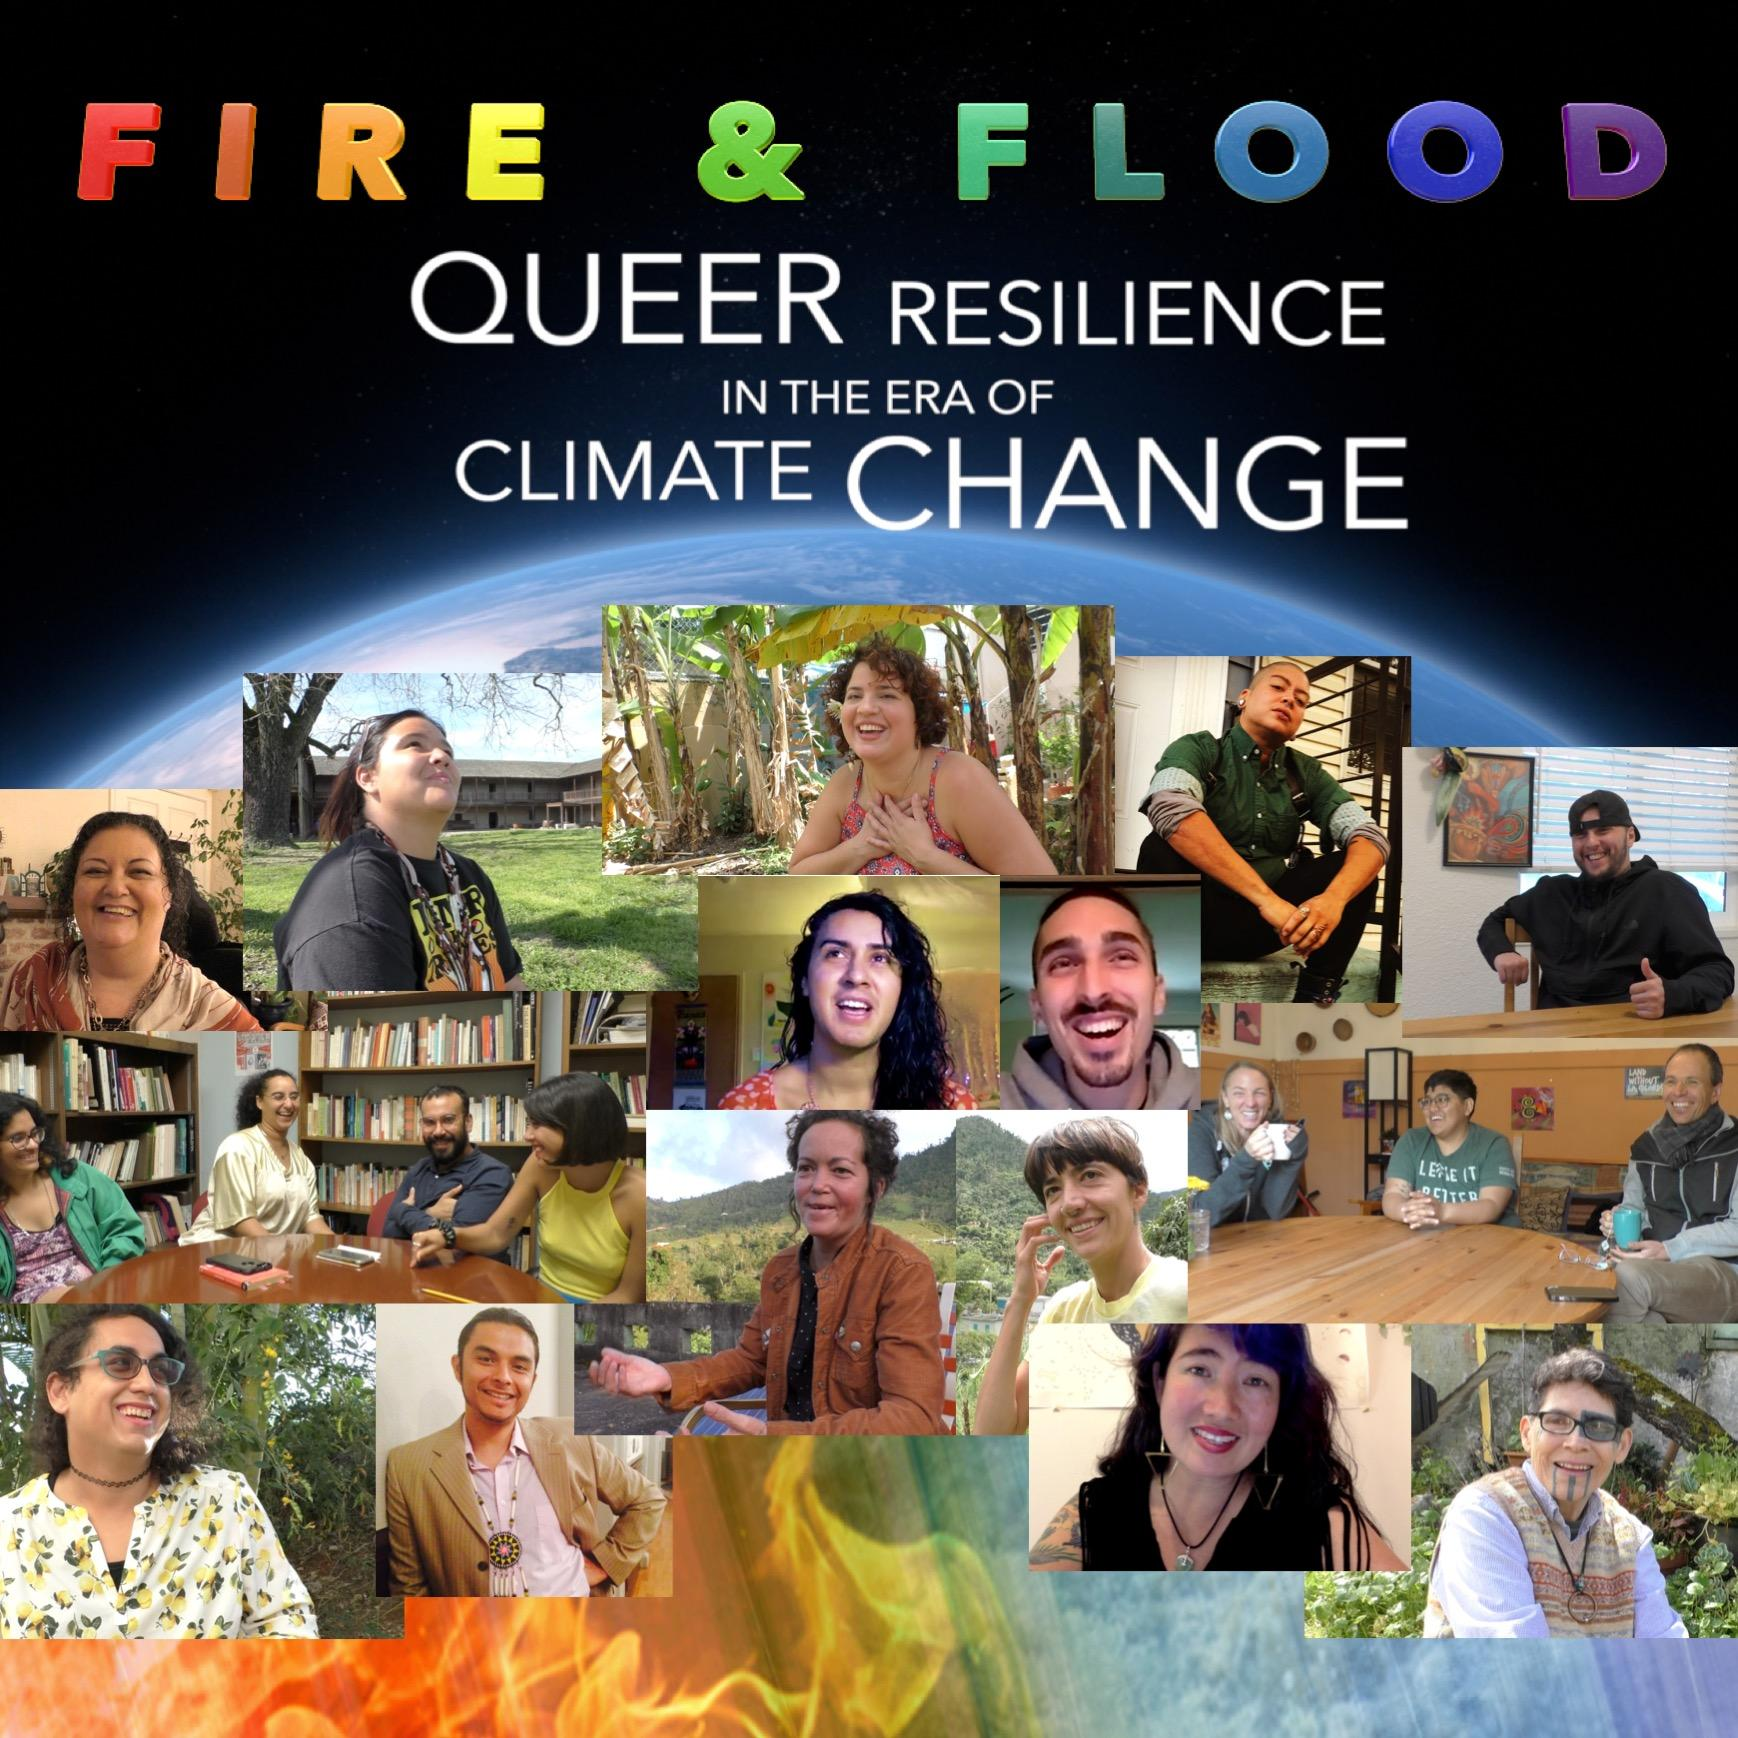 """This image shows the film title """"Fire & Flood"""" in rainbow colored letters, then the subtitle """"QUEER Resilience in the Era of Climate CHANGE"""" in white letters. These are over the background images of: the Earth from space and many people of different races with different gender identities and expression."""